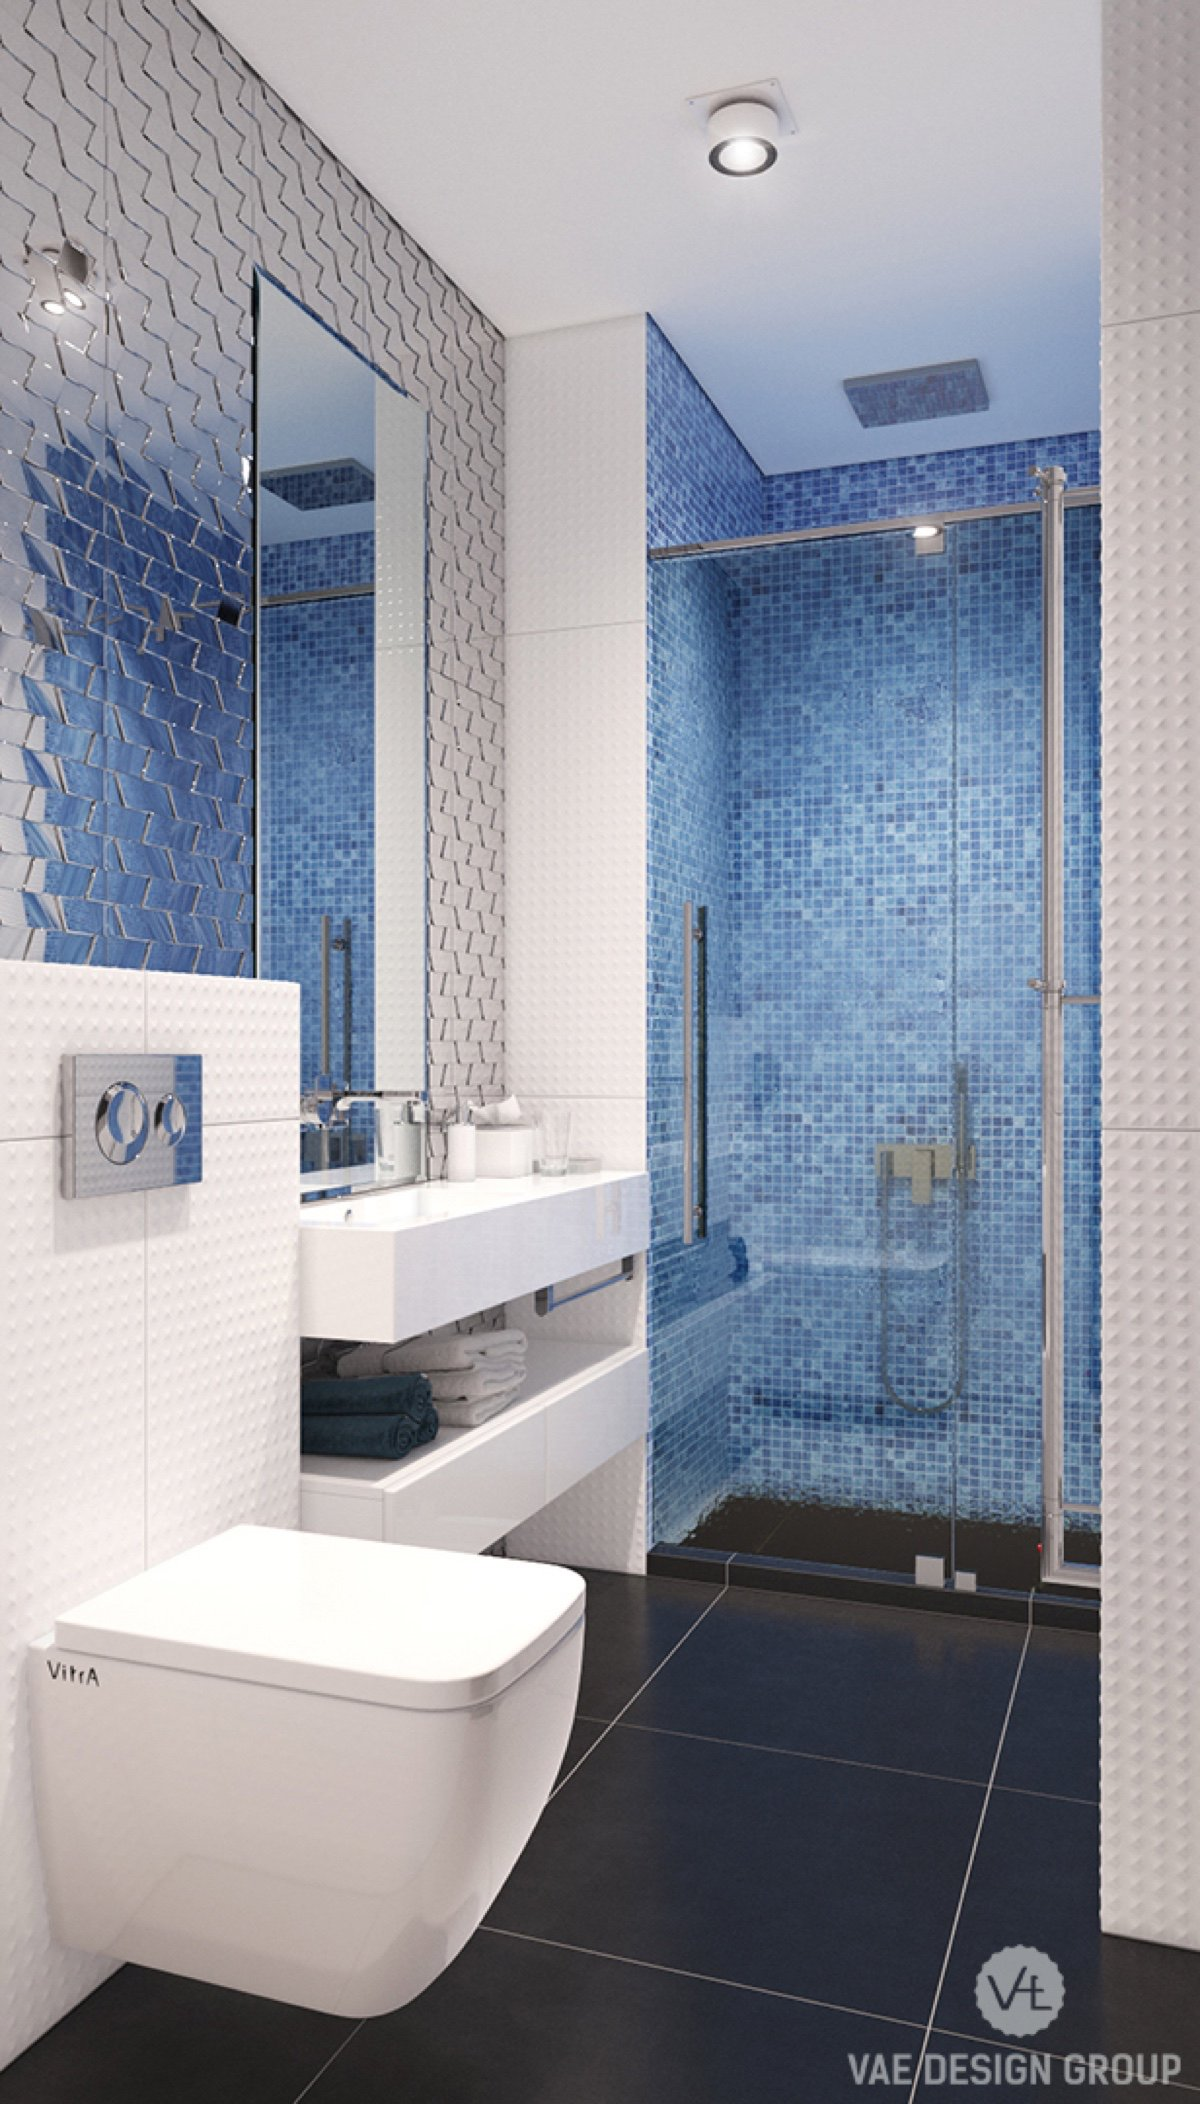 VAE Design Group blue backsplash bathroom